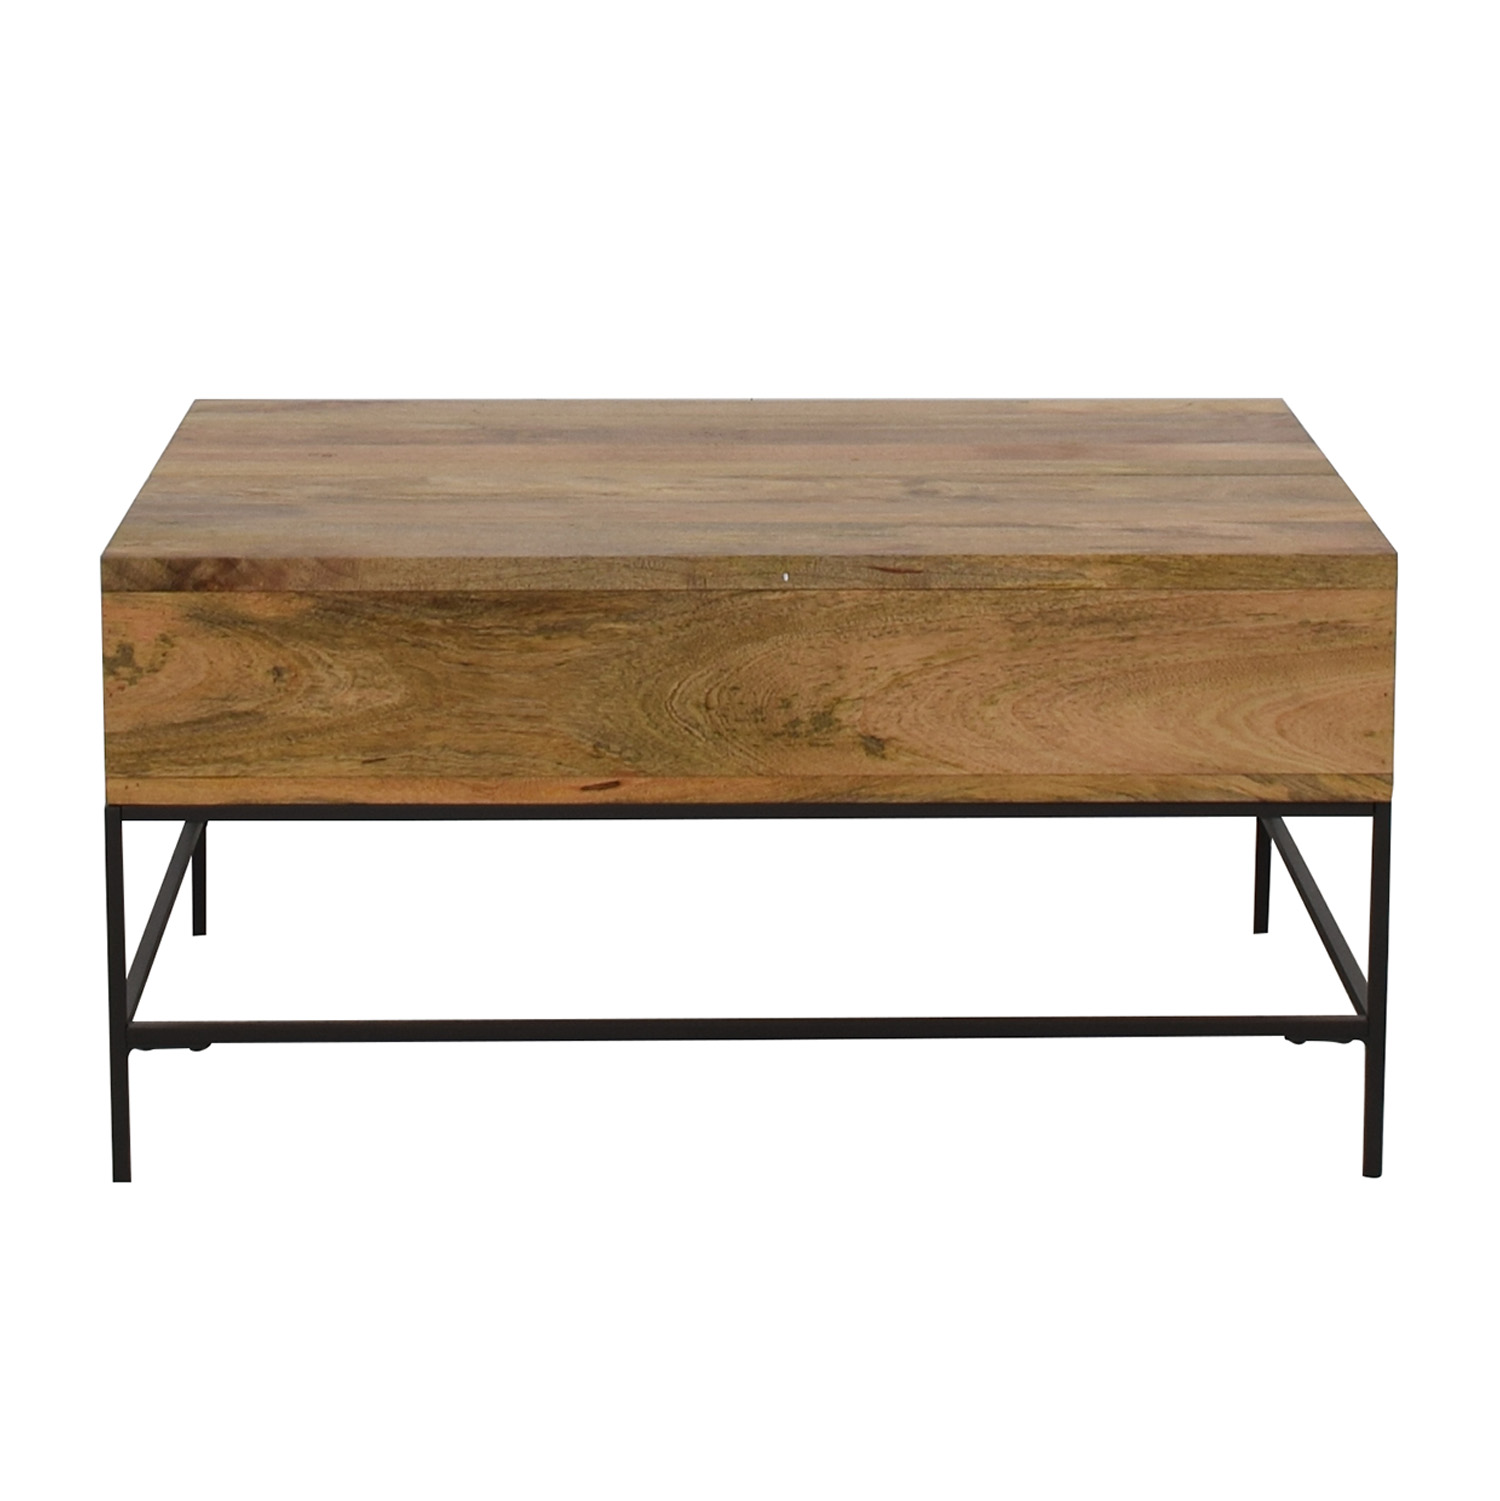 West Elm West Elm Industrial Raw Mango Storage Coffee Table price